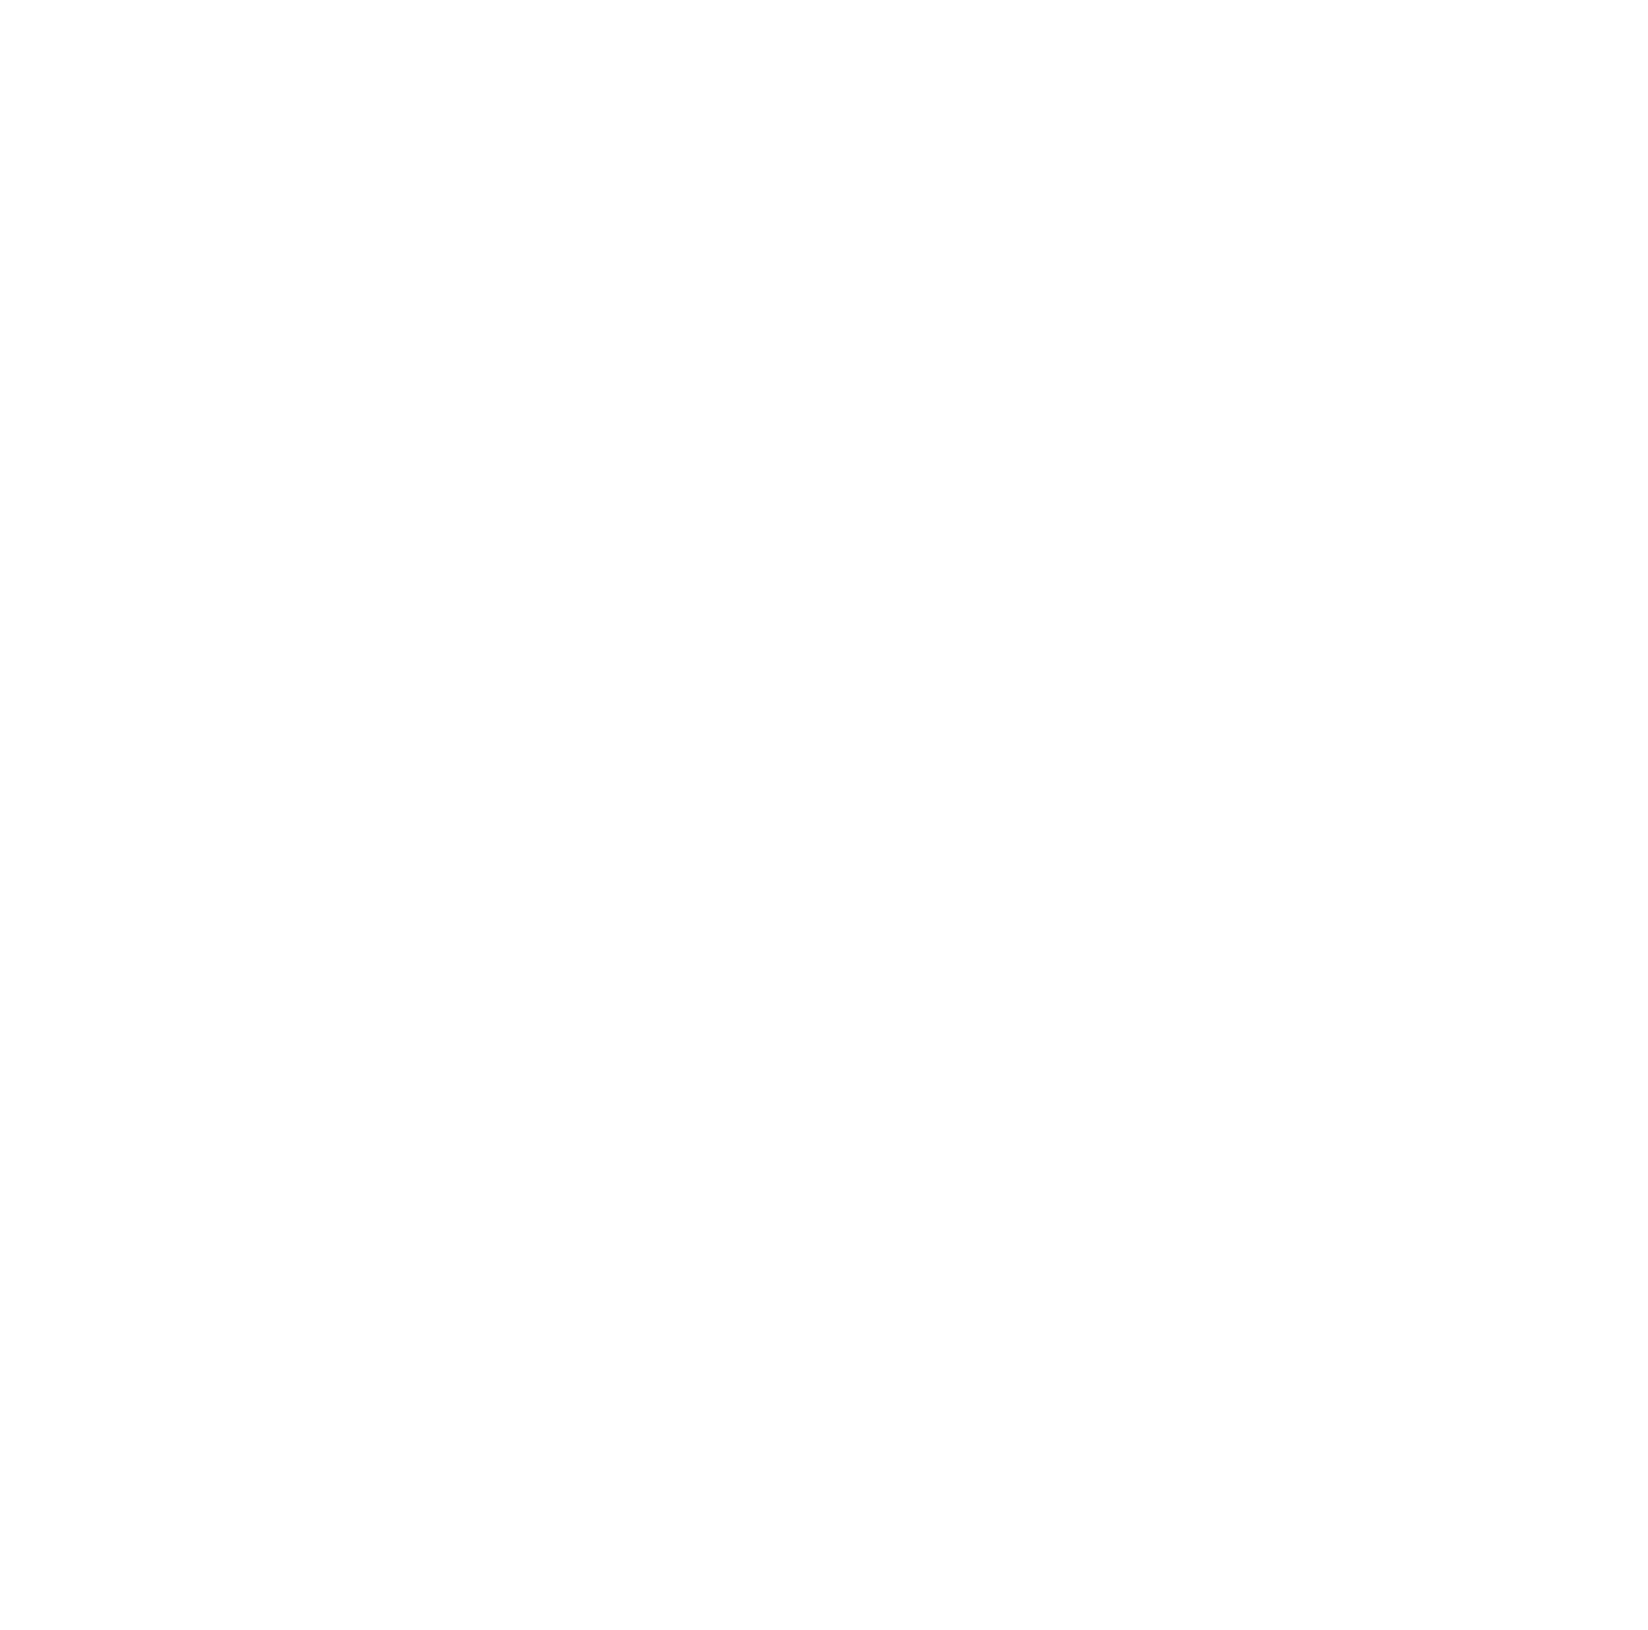 ForeverFotos